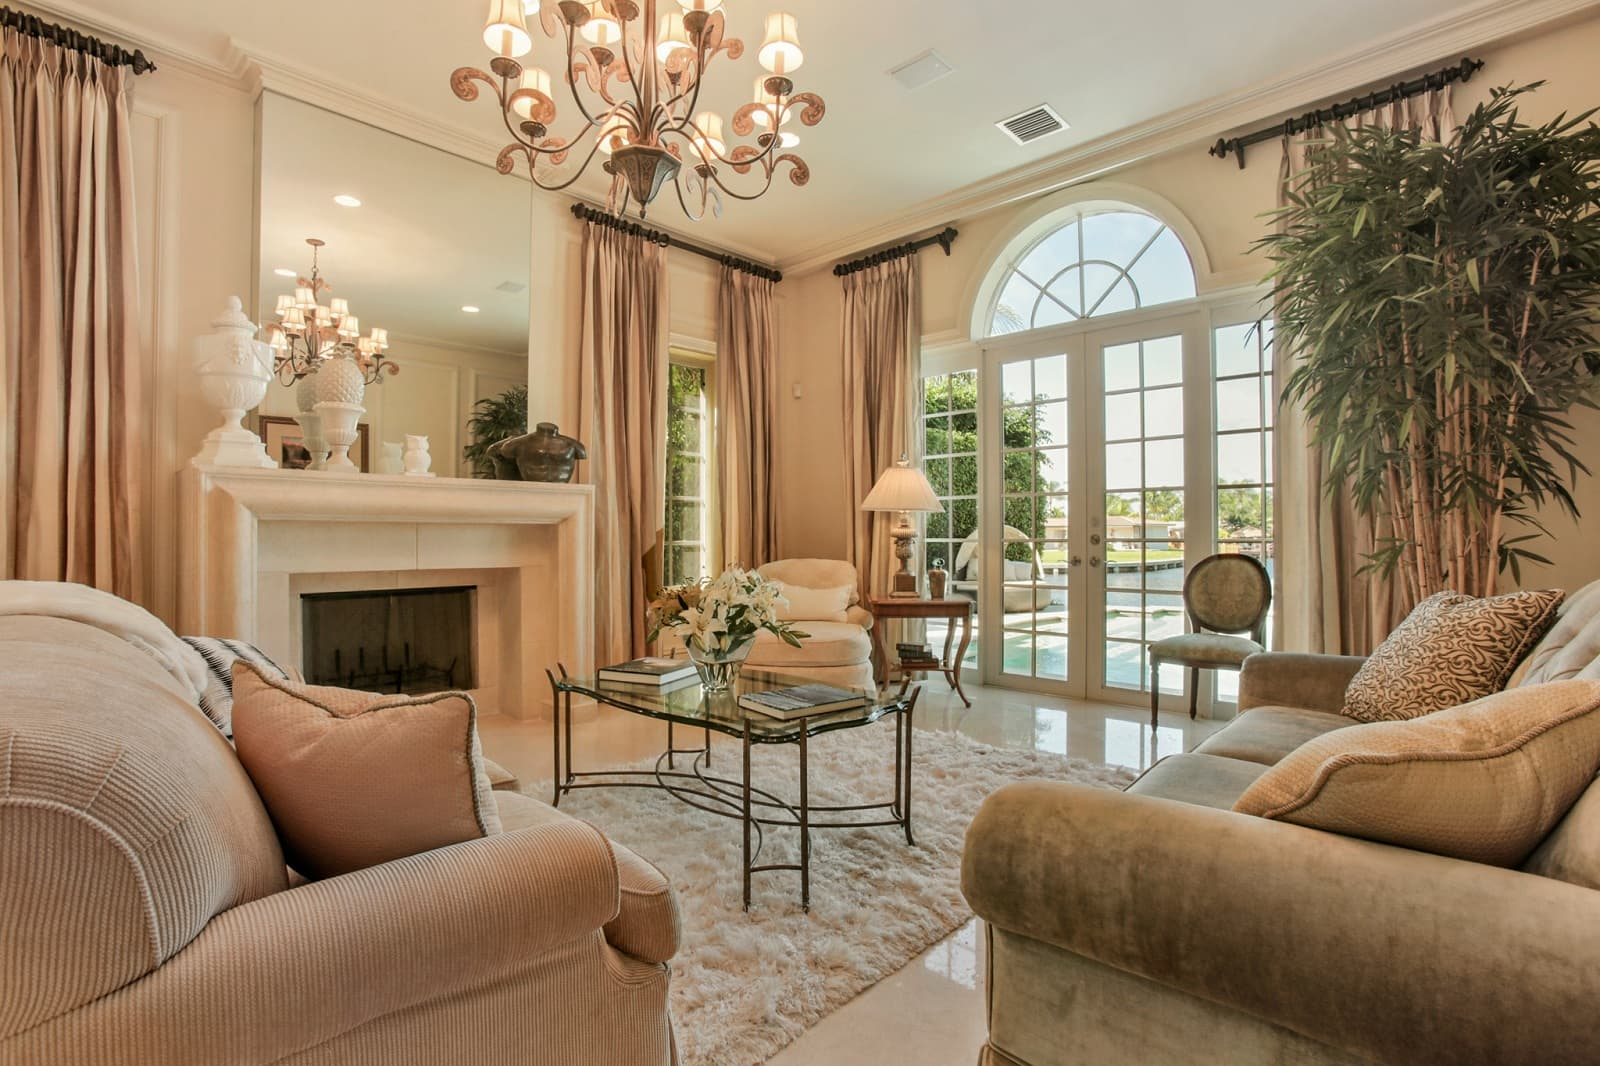 Real Estate Photography in Boca Raton - FL - USA - Living Area View